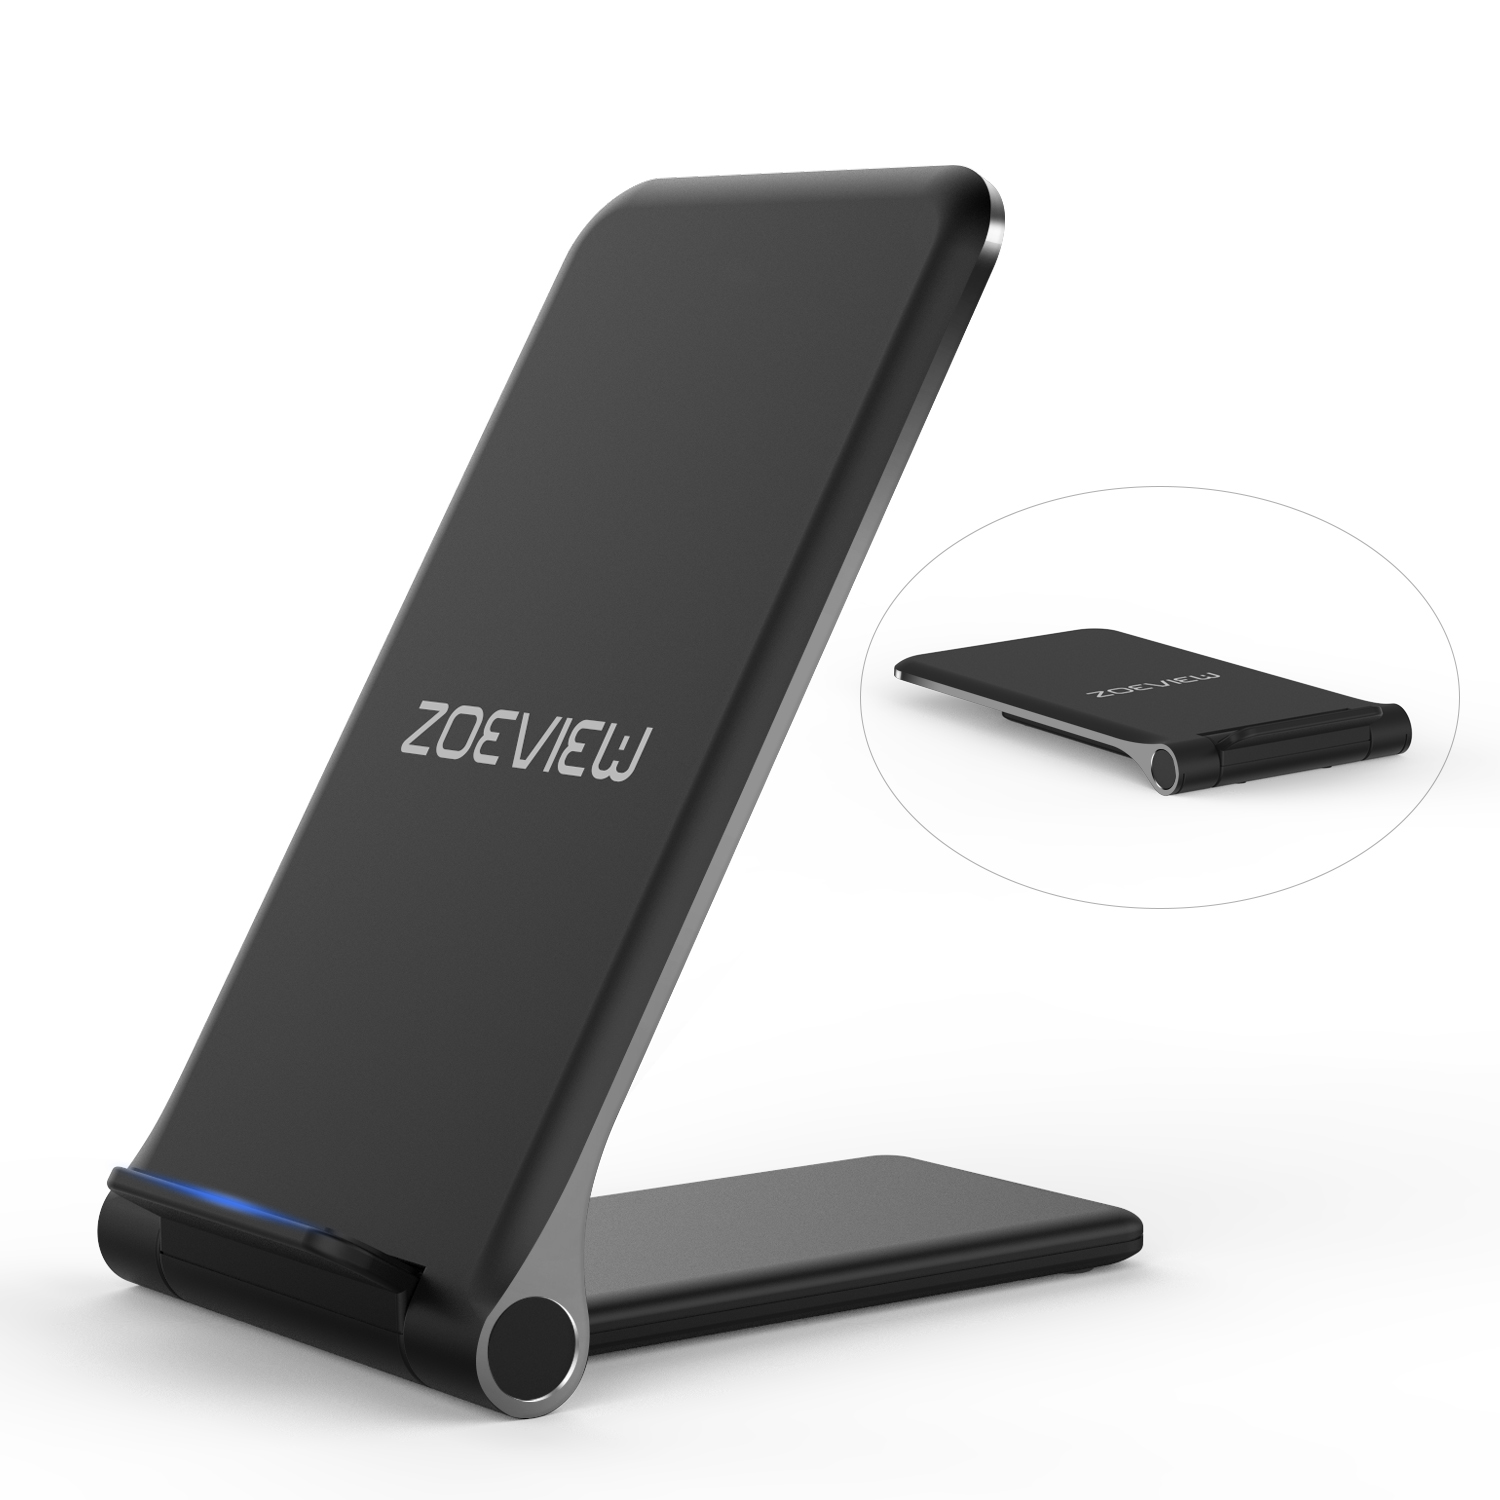 S7 S7 Edge //S6 Edge Plus//Note 5 Qi Wireless Charging Stand Dock for Samsung Galaxy S10//S10 Black